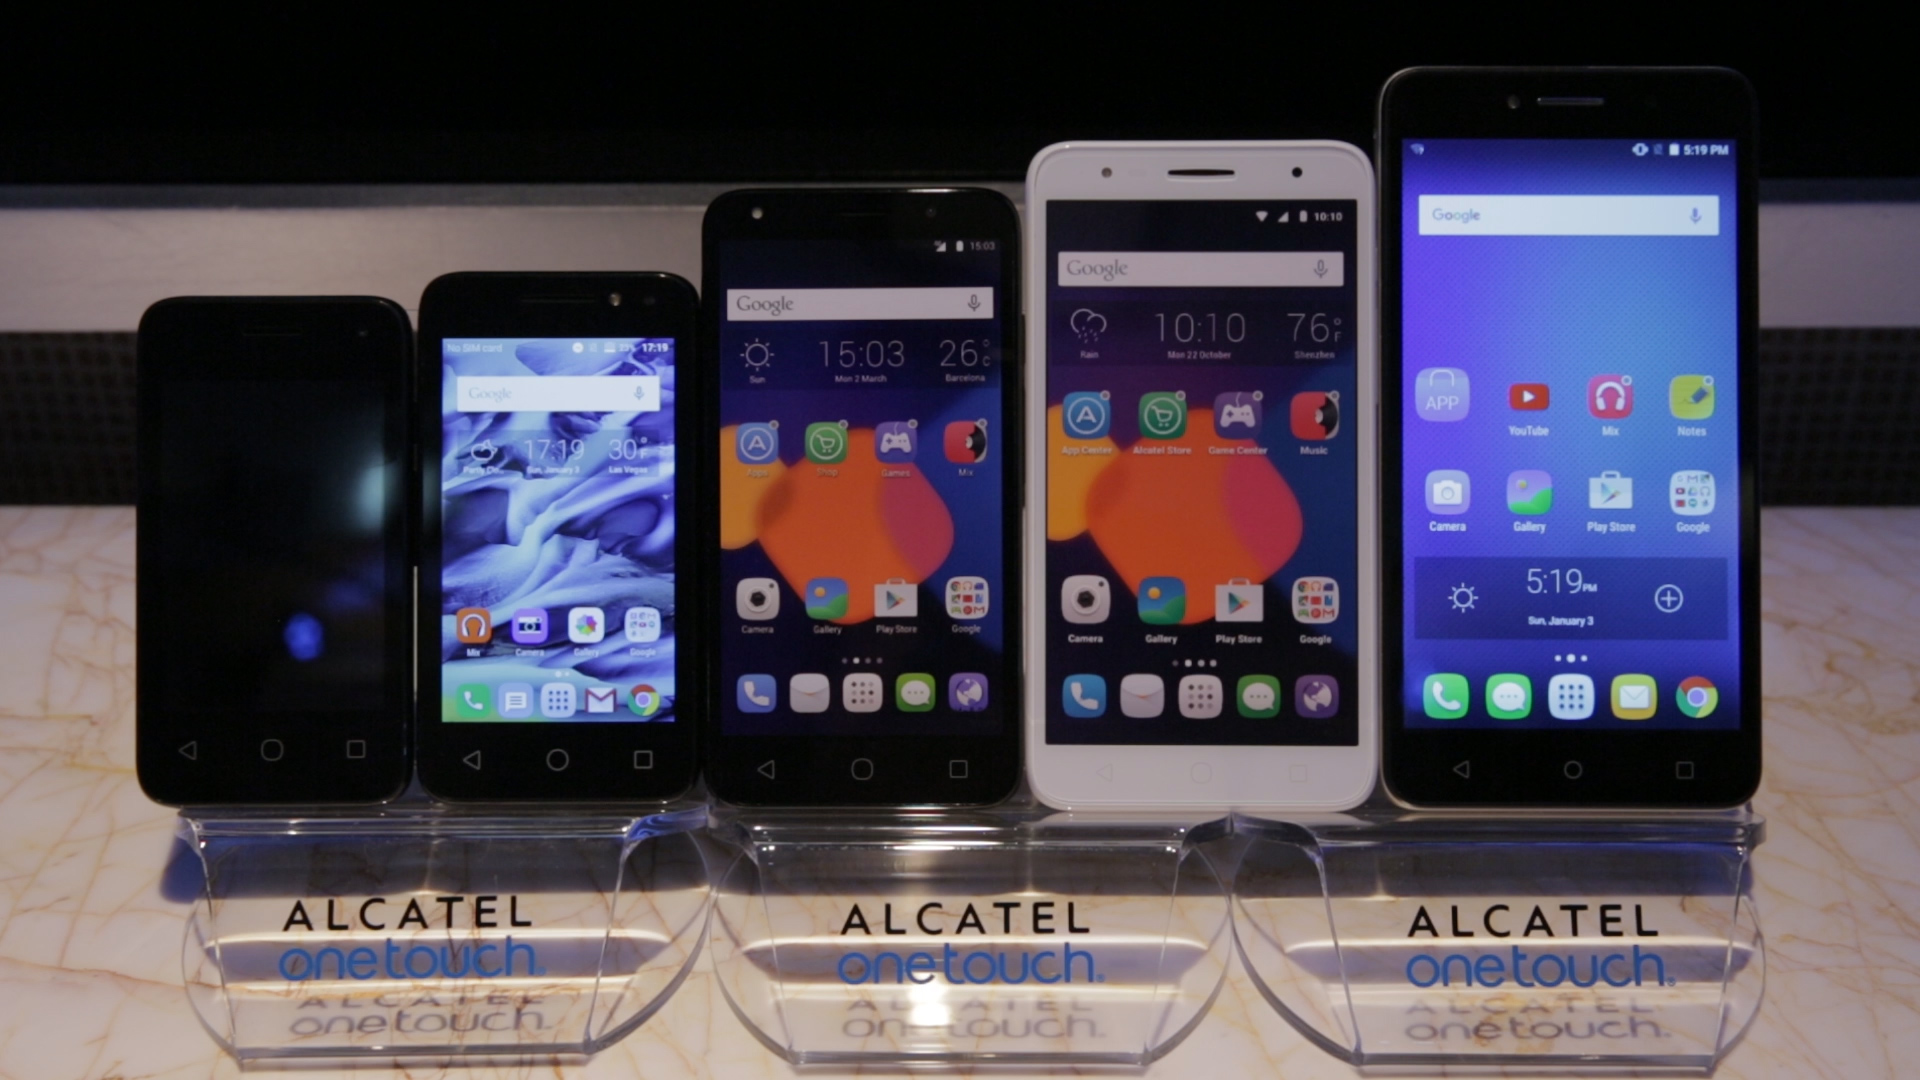 Video: Alcatel Pixi 4 phones go from really big to really little